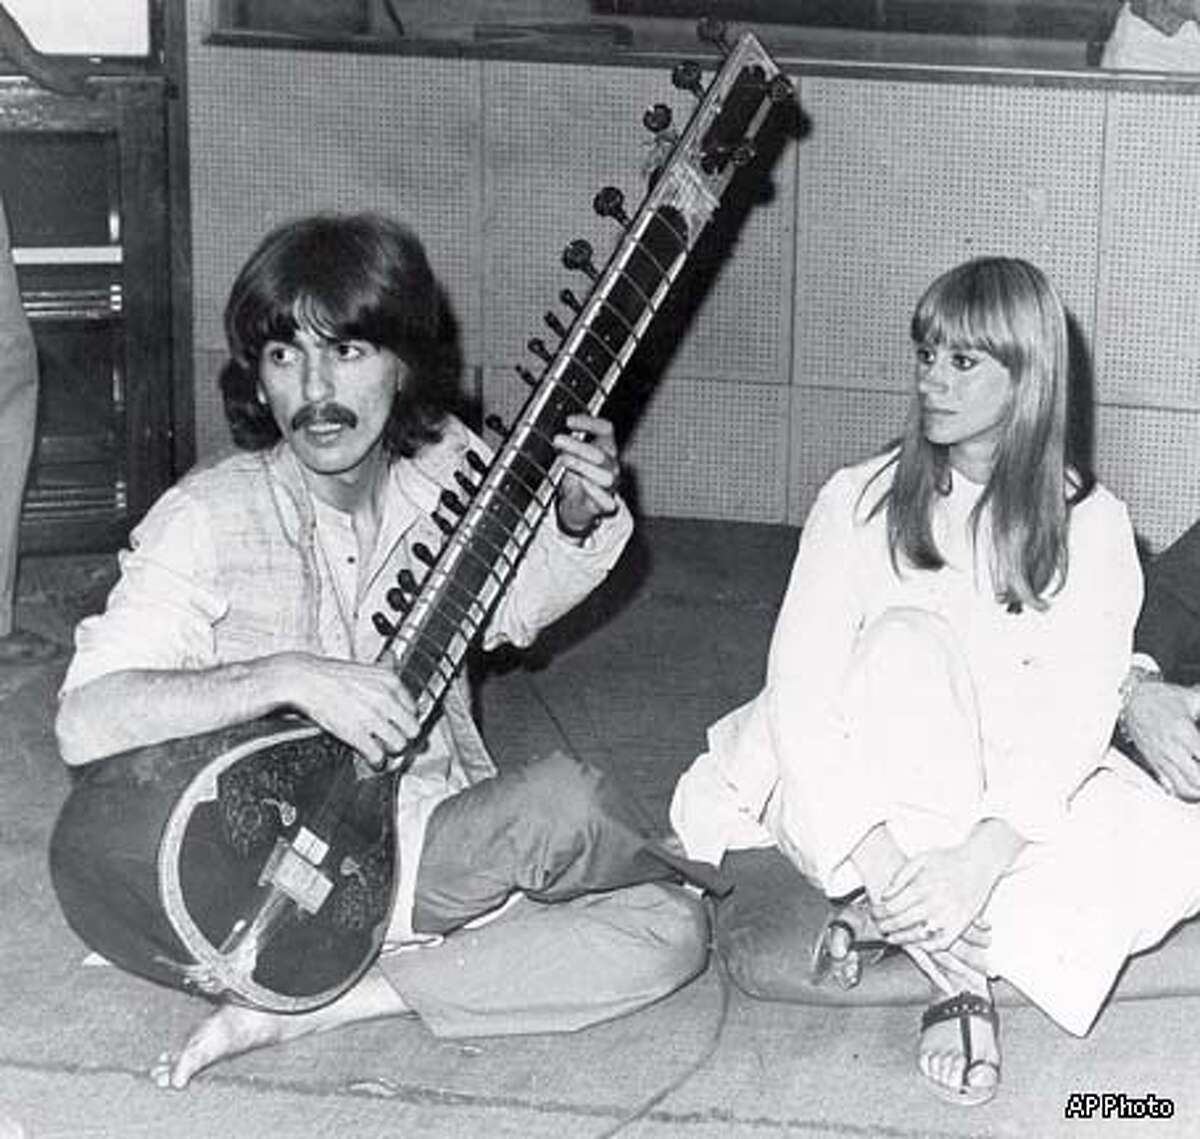 FILE--George Harrison plays the sitar in Bombay, India in this Jan. 14, 1968, file photo. Harrison died Thursday Nov. 29, 2001, a longtime family friend said. He was 58. At right is British actress Rita Tushingham, who was making a motion picture in India. (AP Photo)